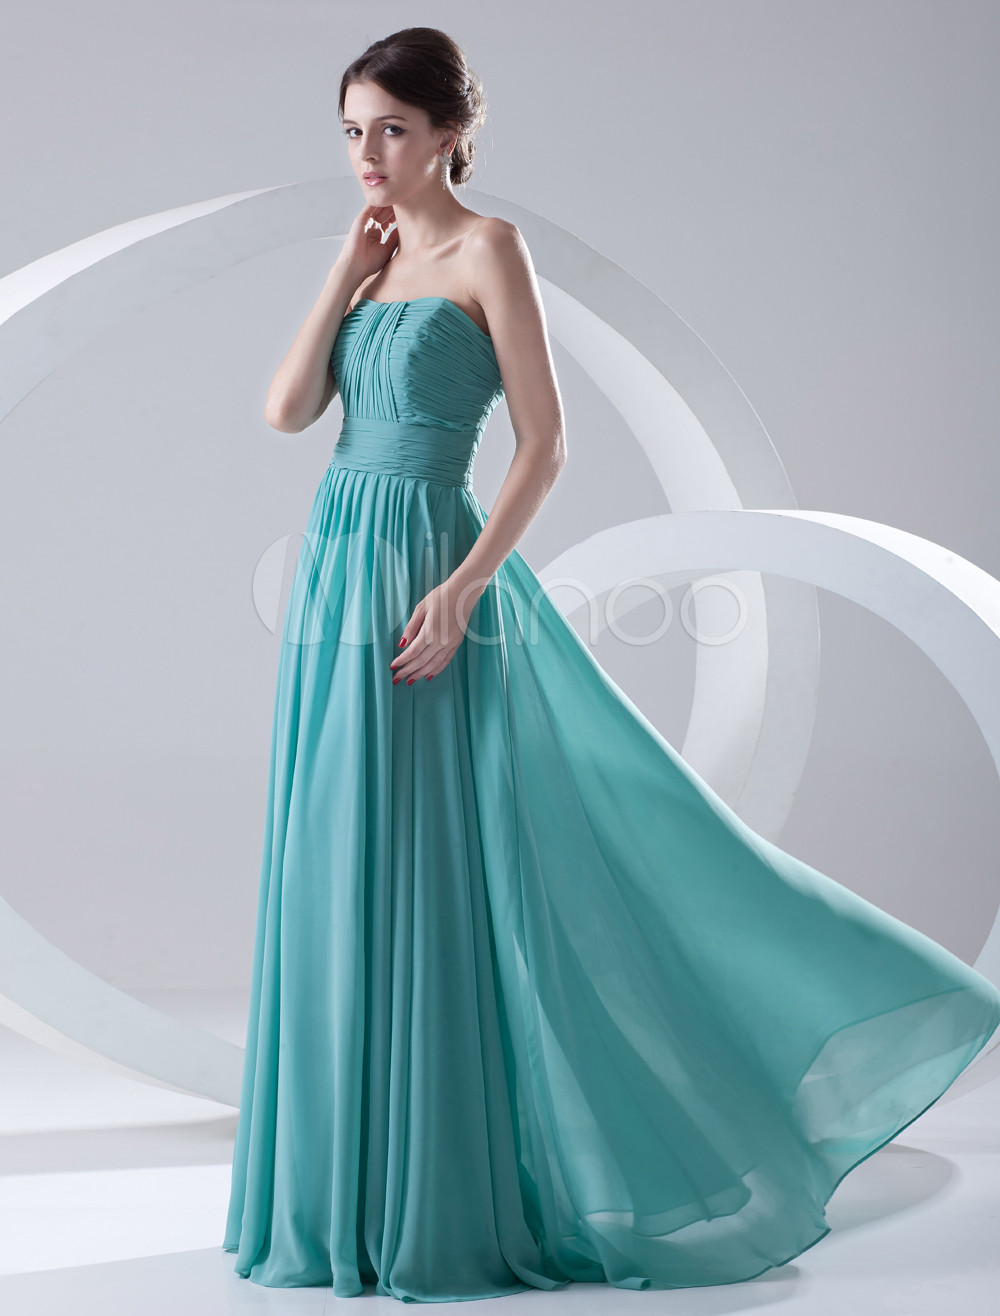 Long Bridesmaid Dress Chiffon Turquoise Evening Dress Sweetheart Strapless Ruched Floor Length Wedding Party Dress (Evening Dresses) photo